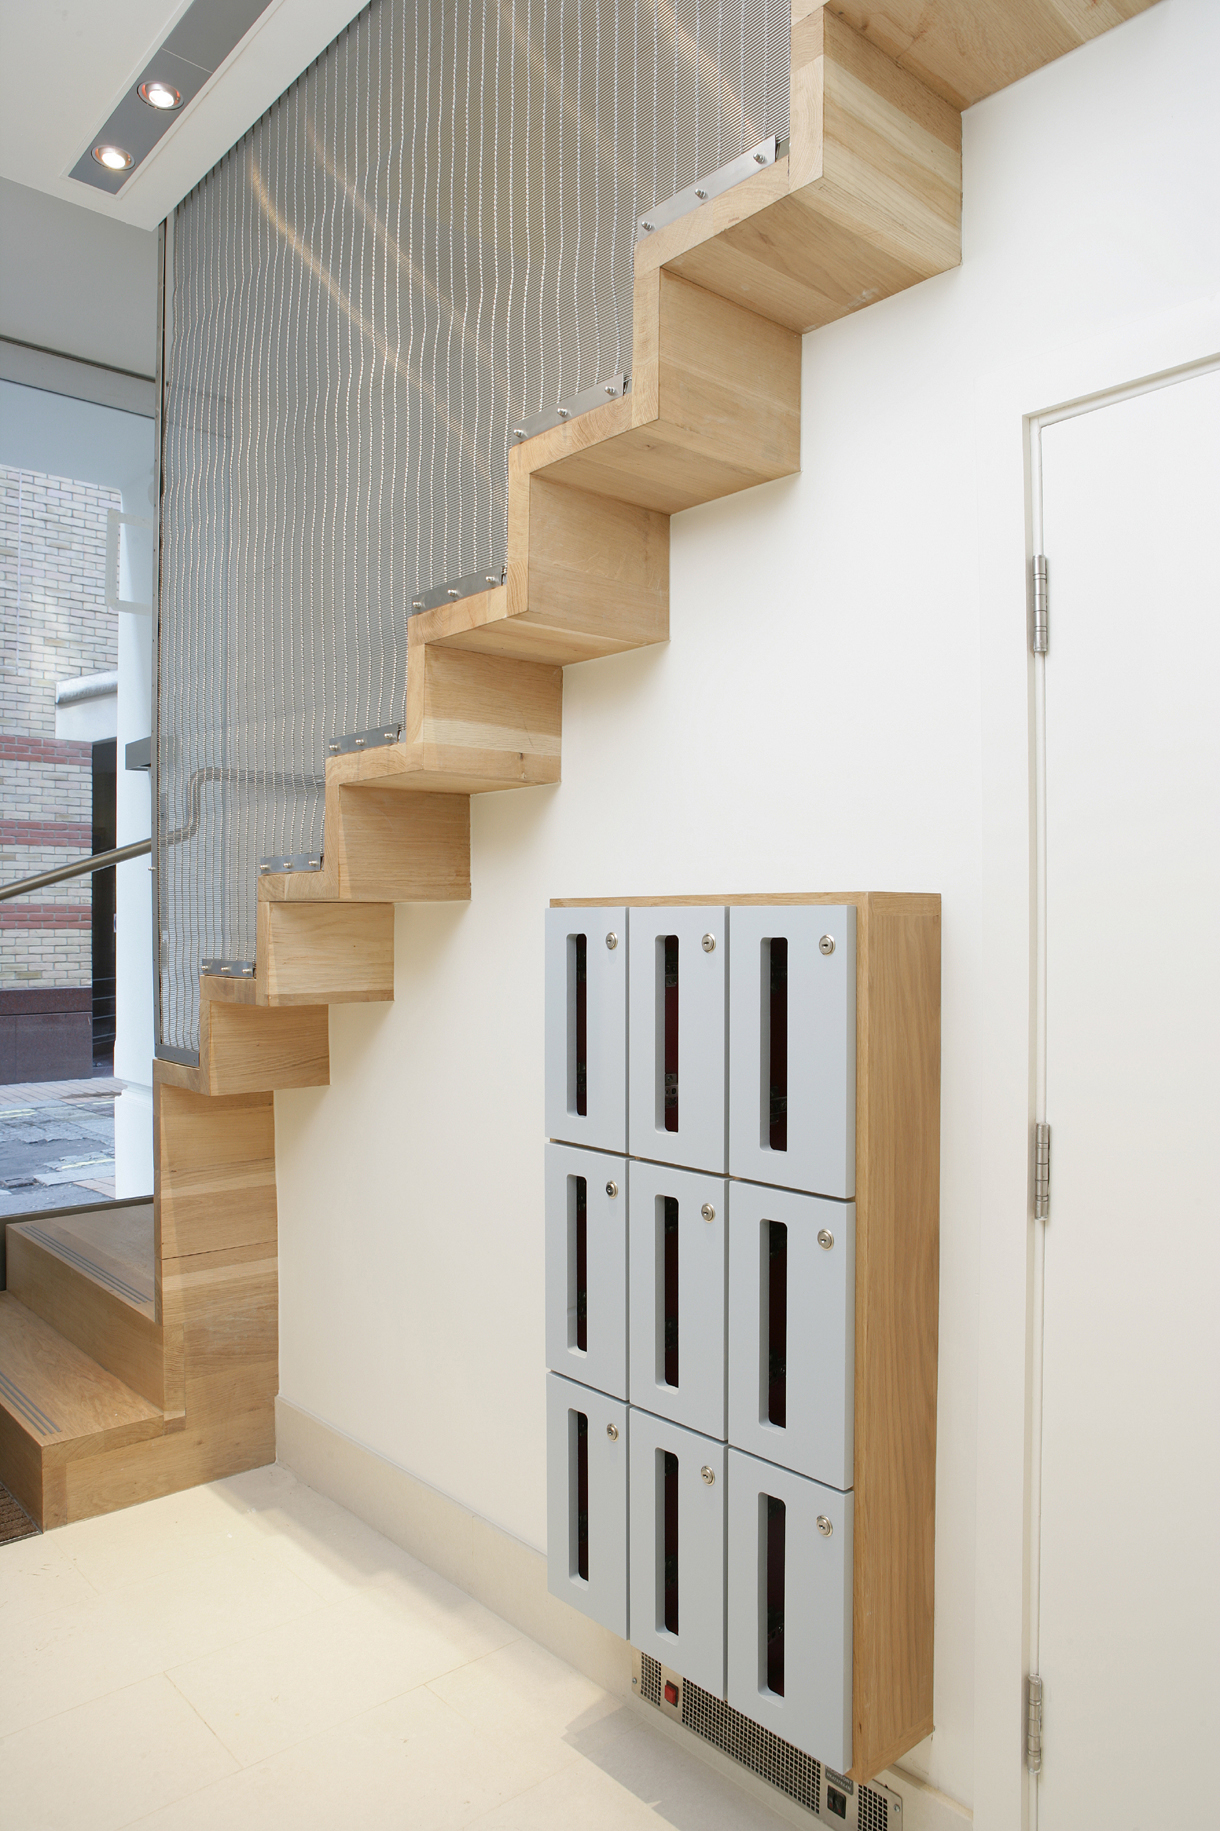 Kingly Street Timber Mesh Staircase Entrance Lockers